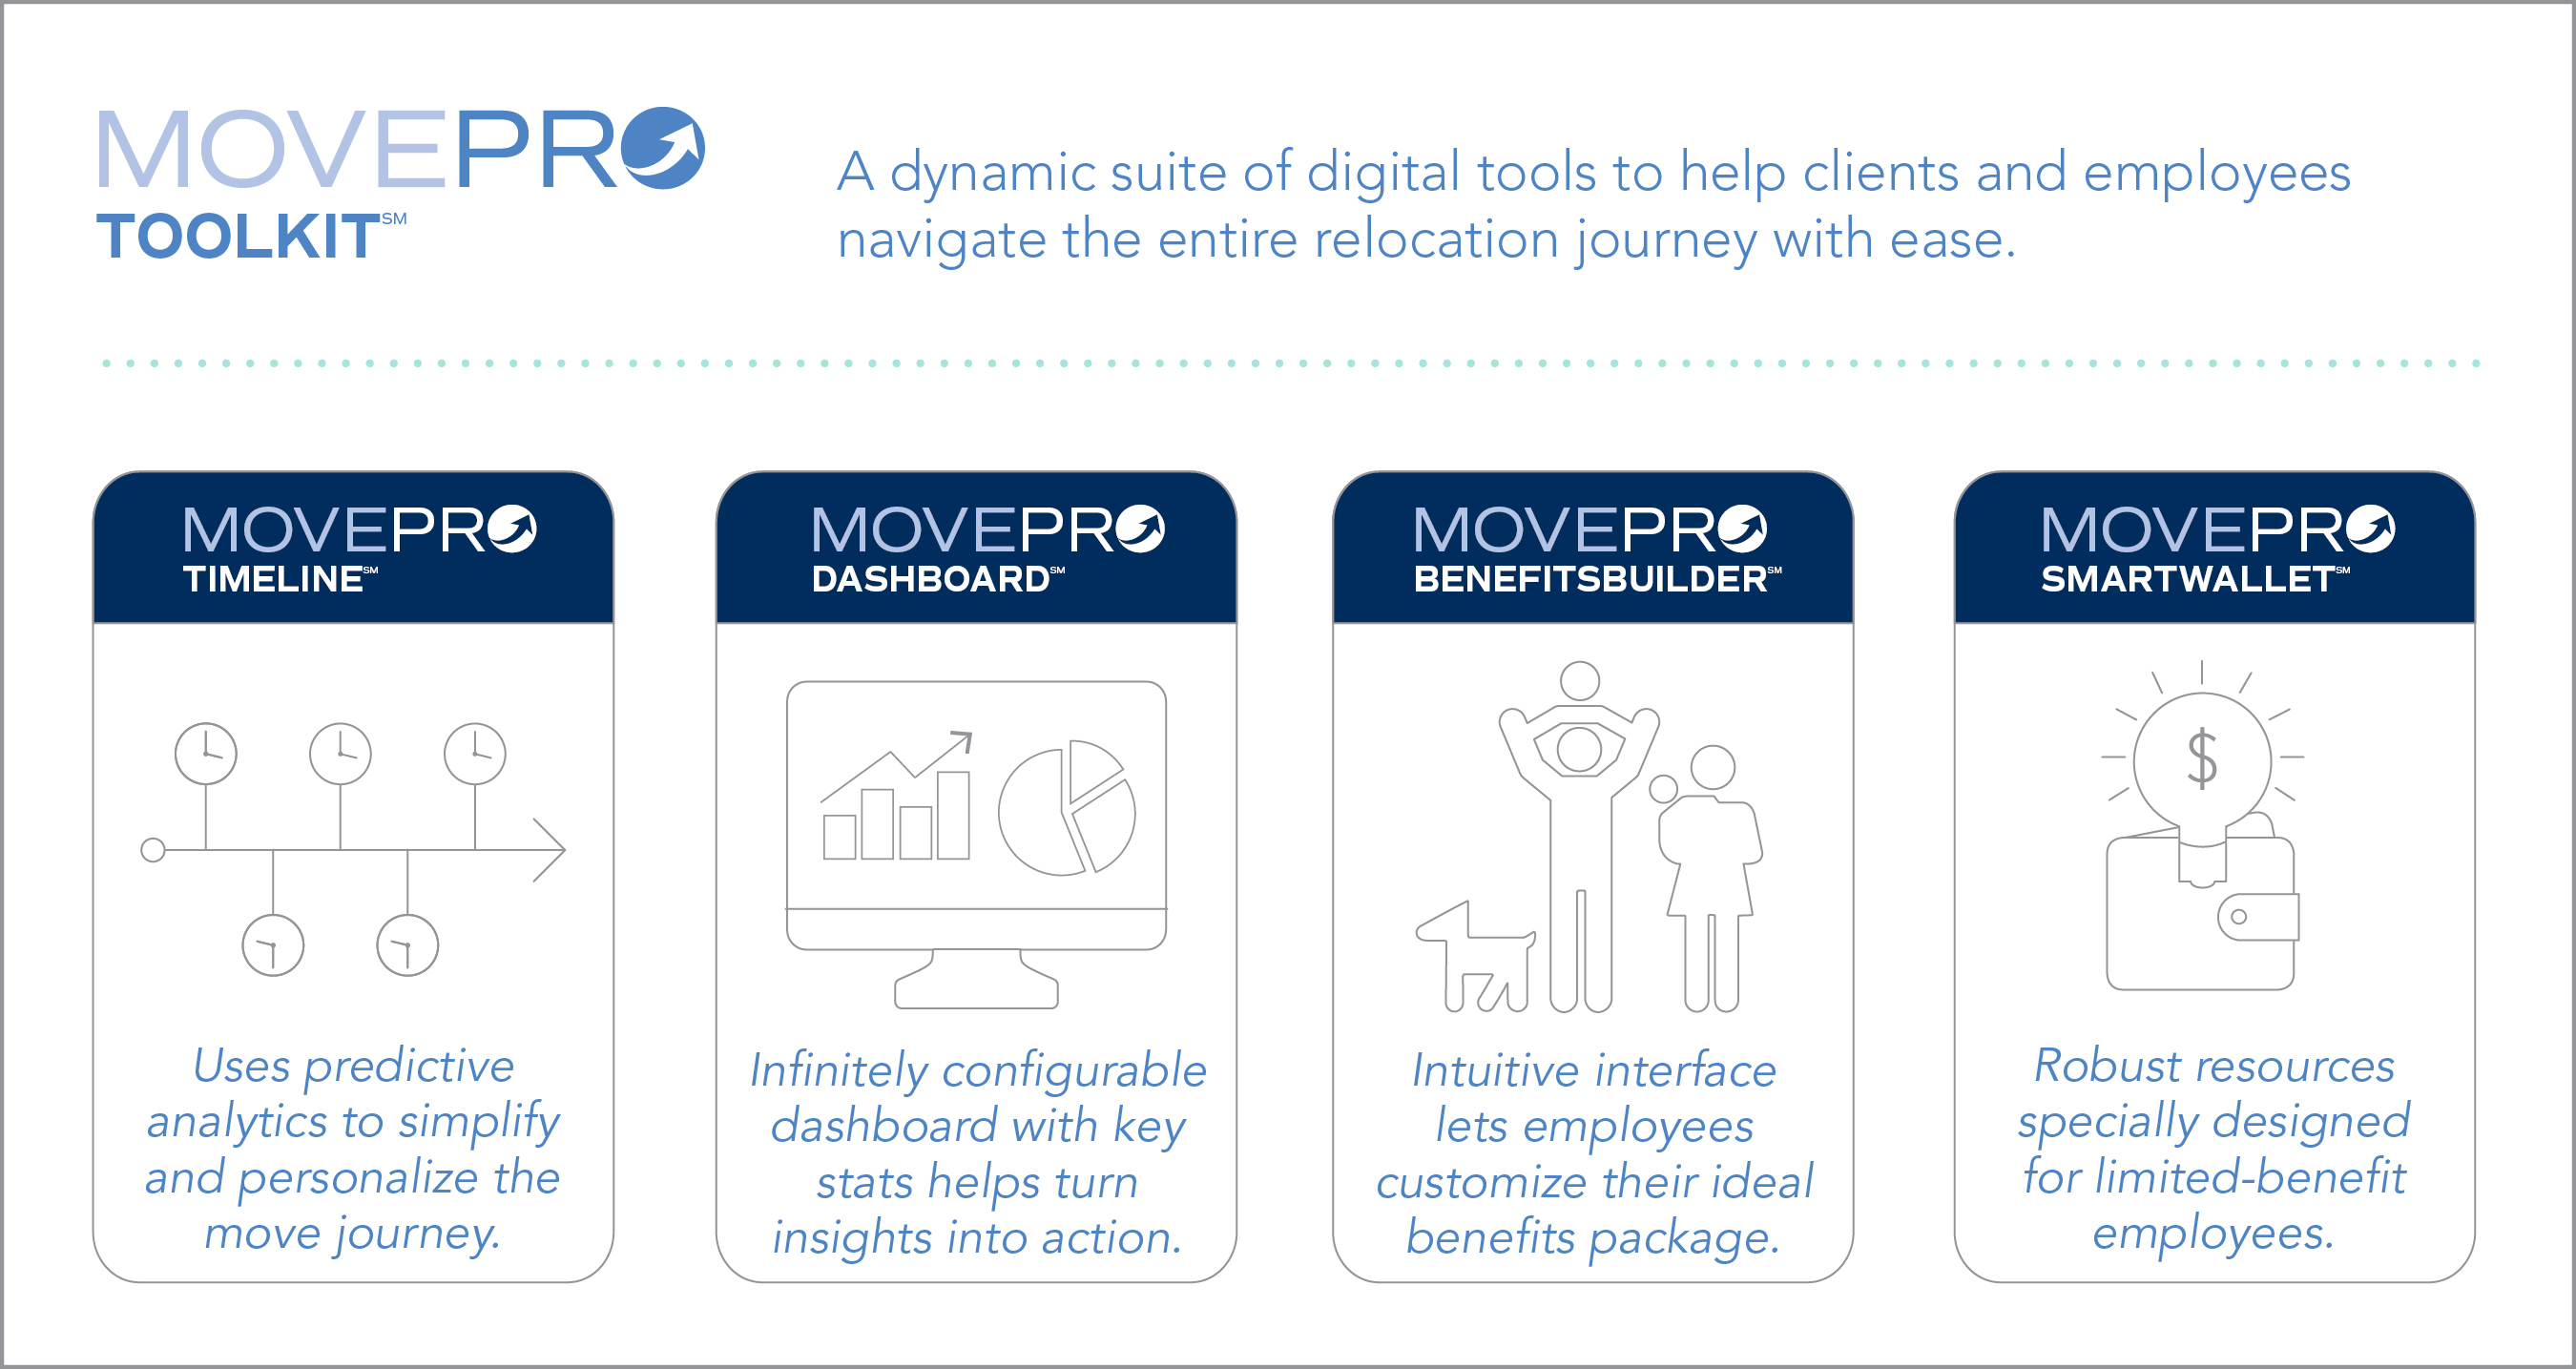 Cartus MovePro ToolKit℠ Infographic